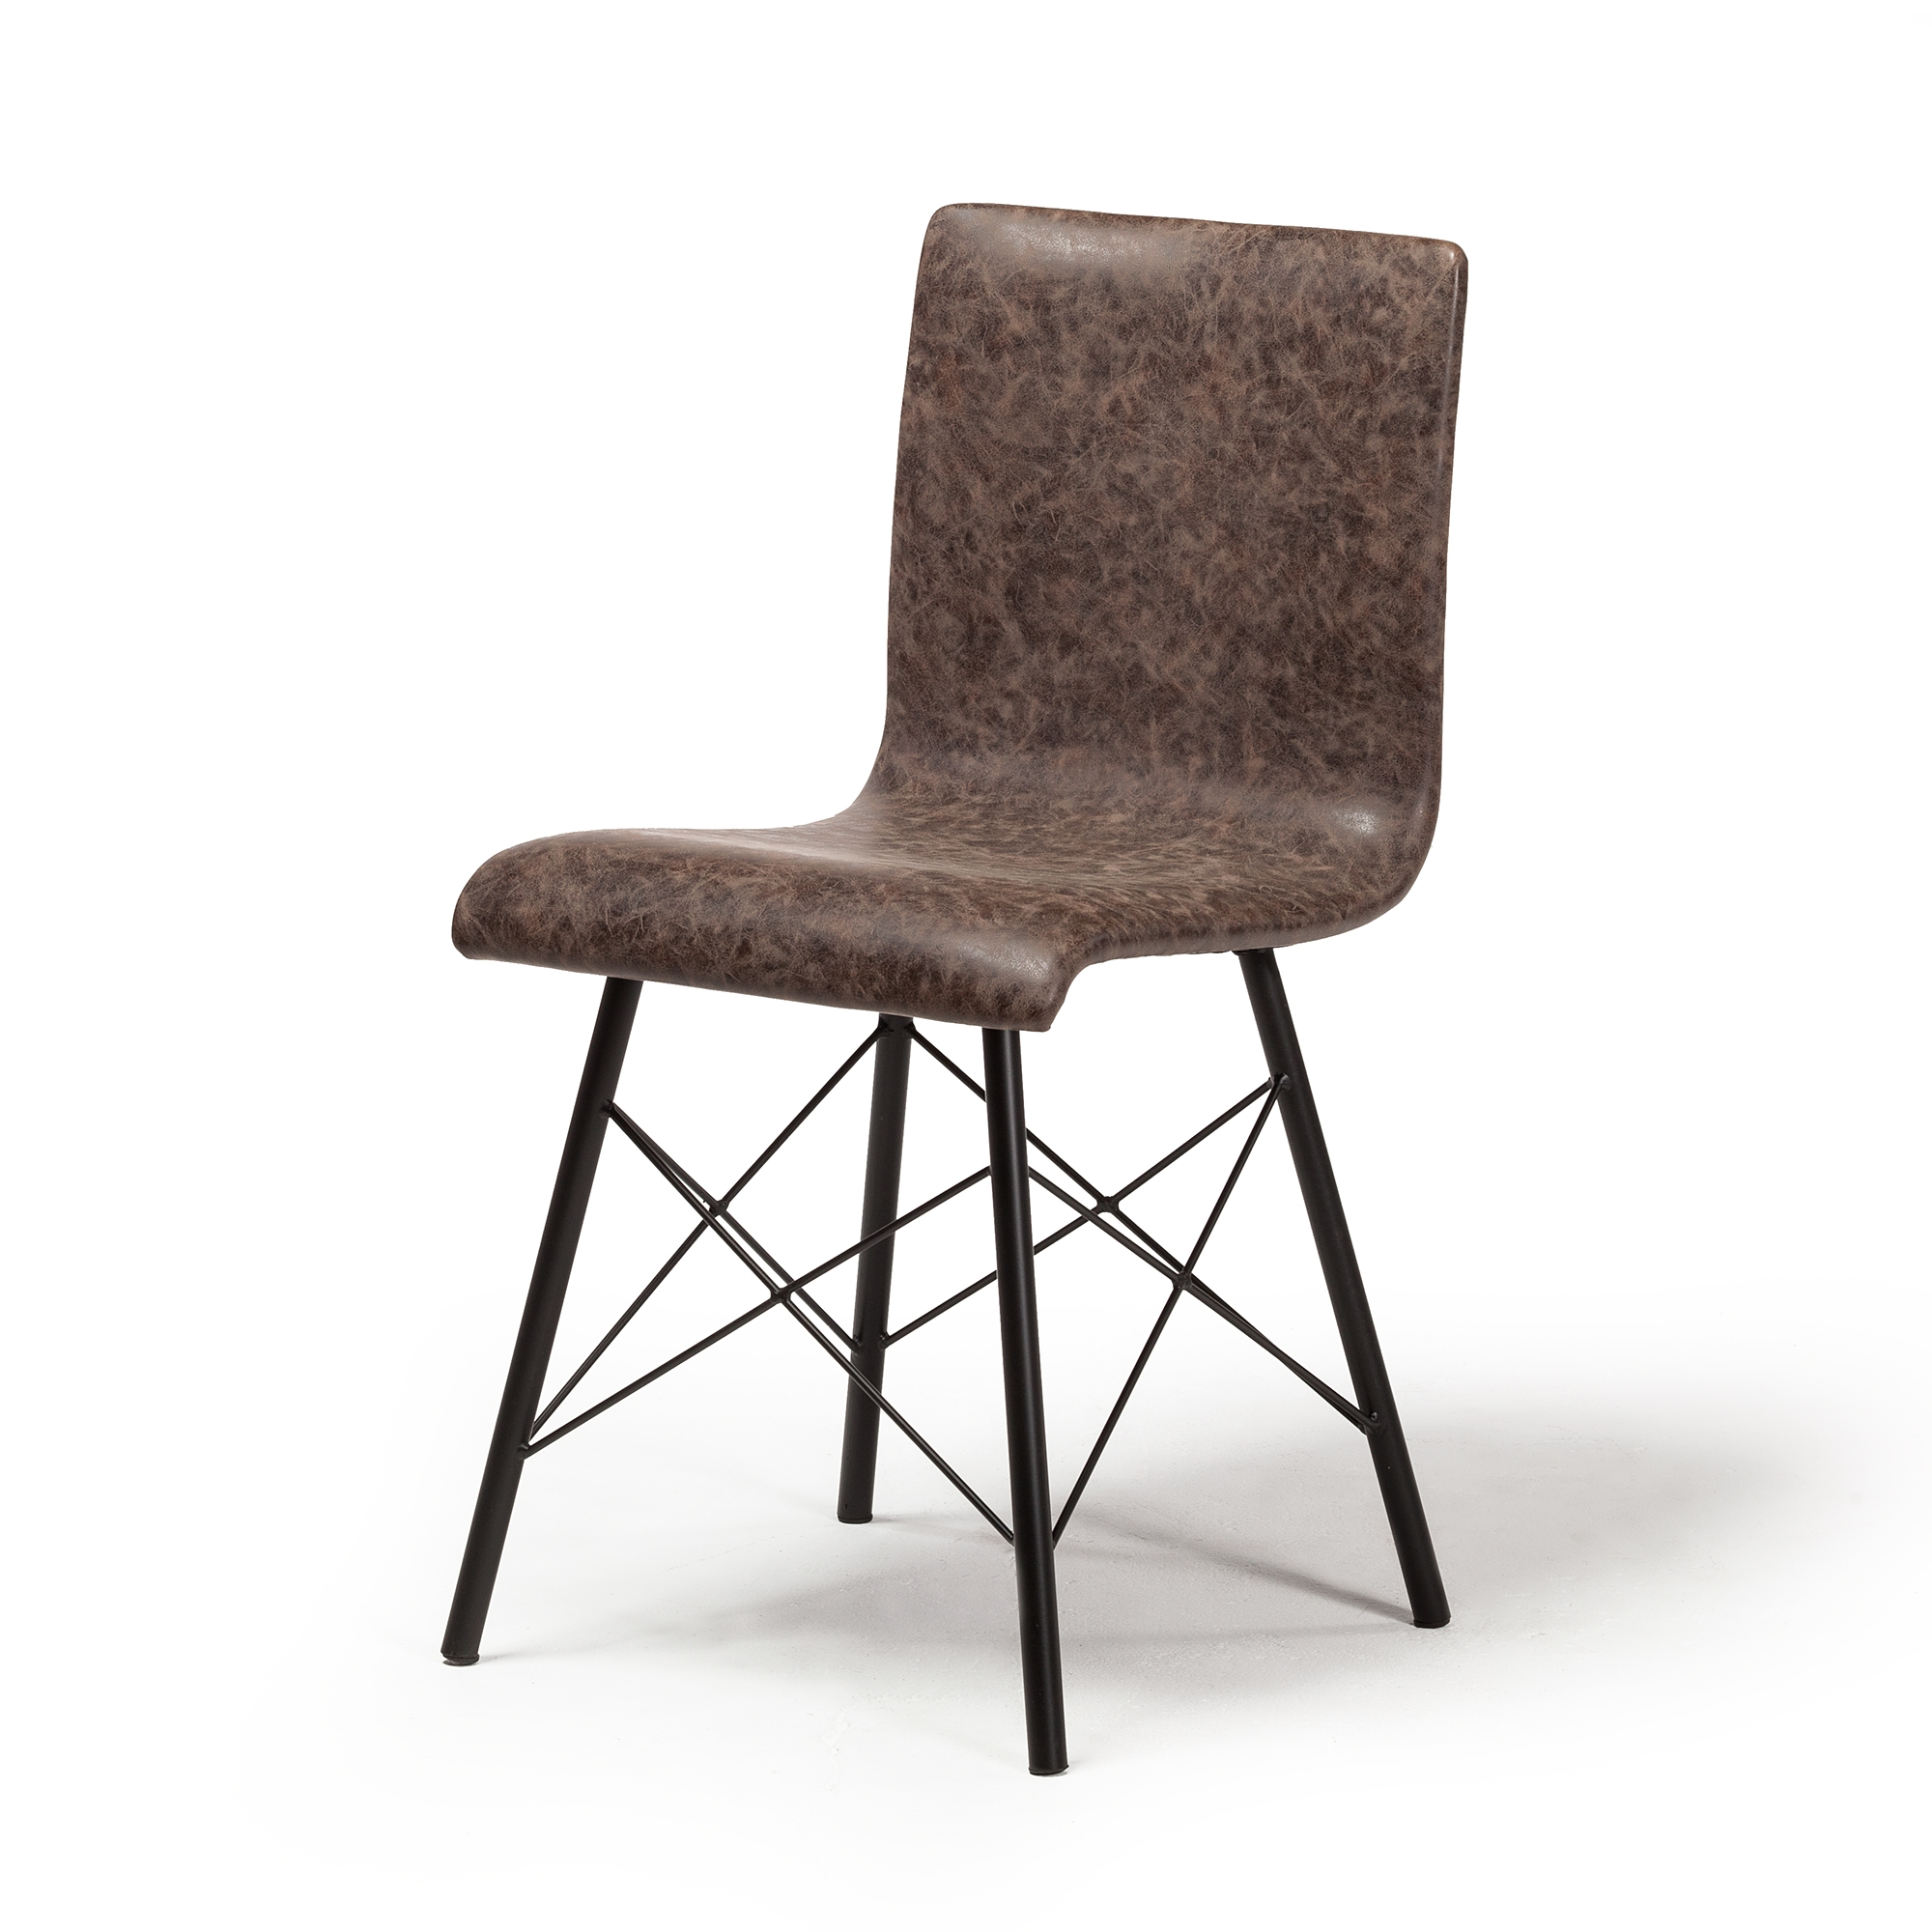 Cool Davis Dining Chair In Distressed Brown Leather The Khazana Home Austin Furniture Store Aria Dining Chair Four Hands Furniture Gmtry Best Dining Table And Chair Ideas Images Gmtryco